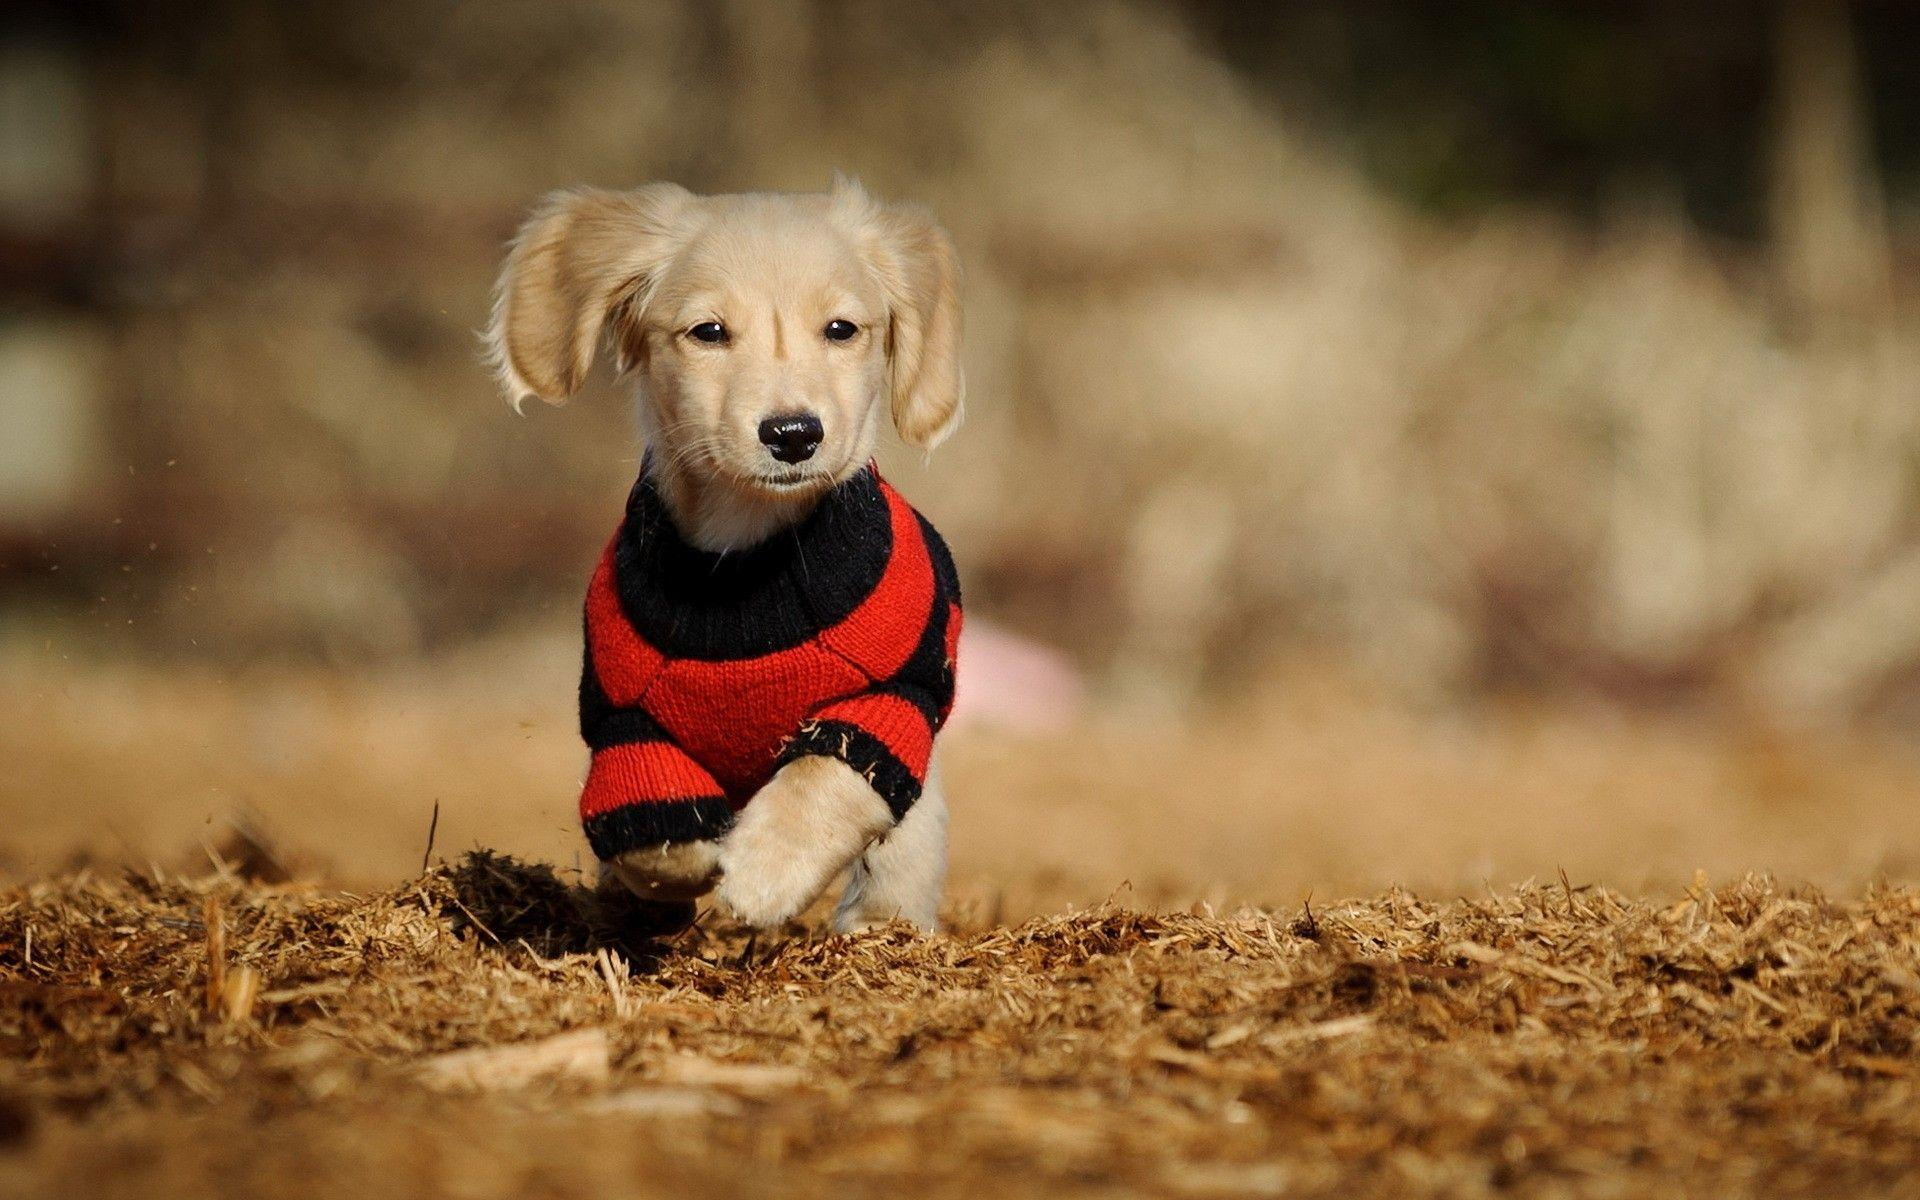 Cute Running Dog Wide Wallpapers Download Wallpapers from